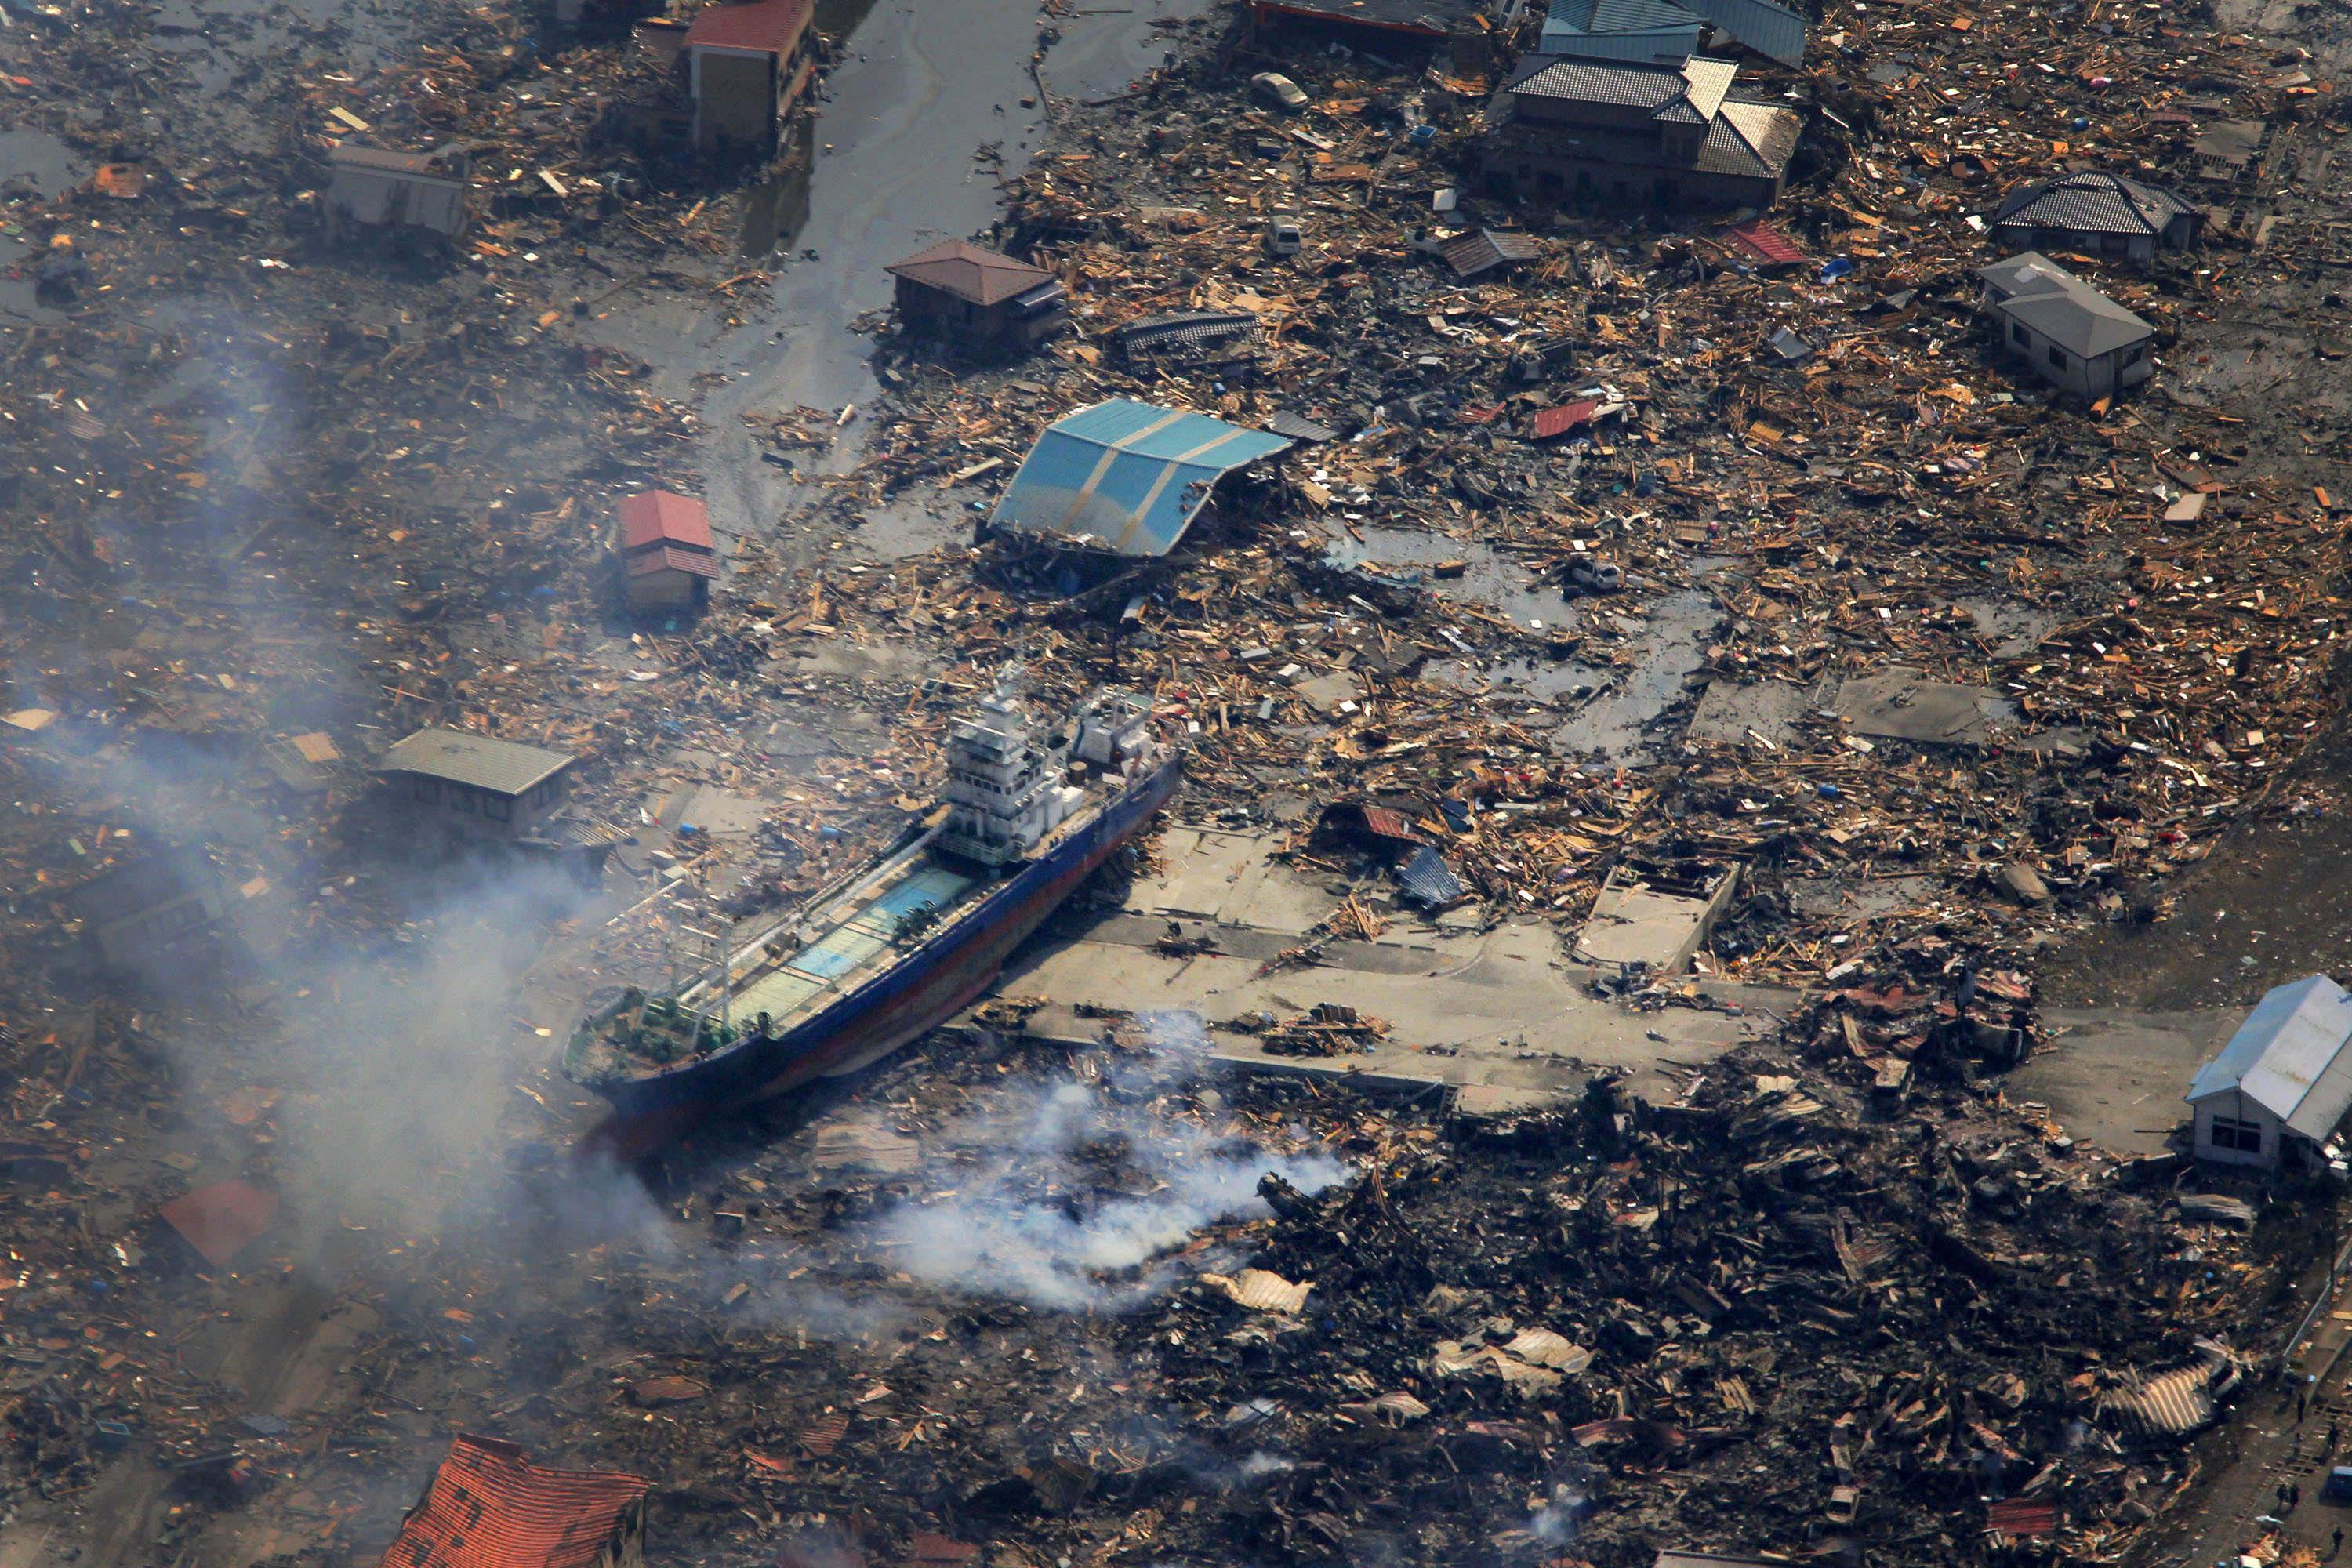 Trauma to lives, economy from tsunami persists 6 years on